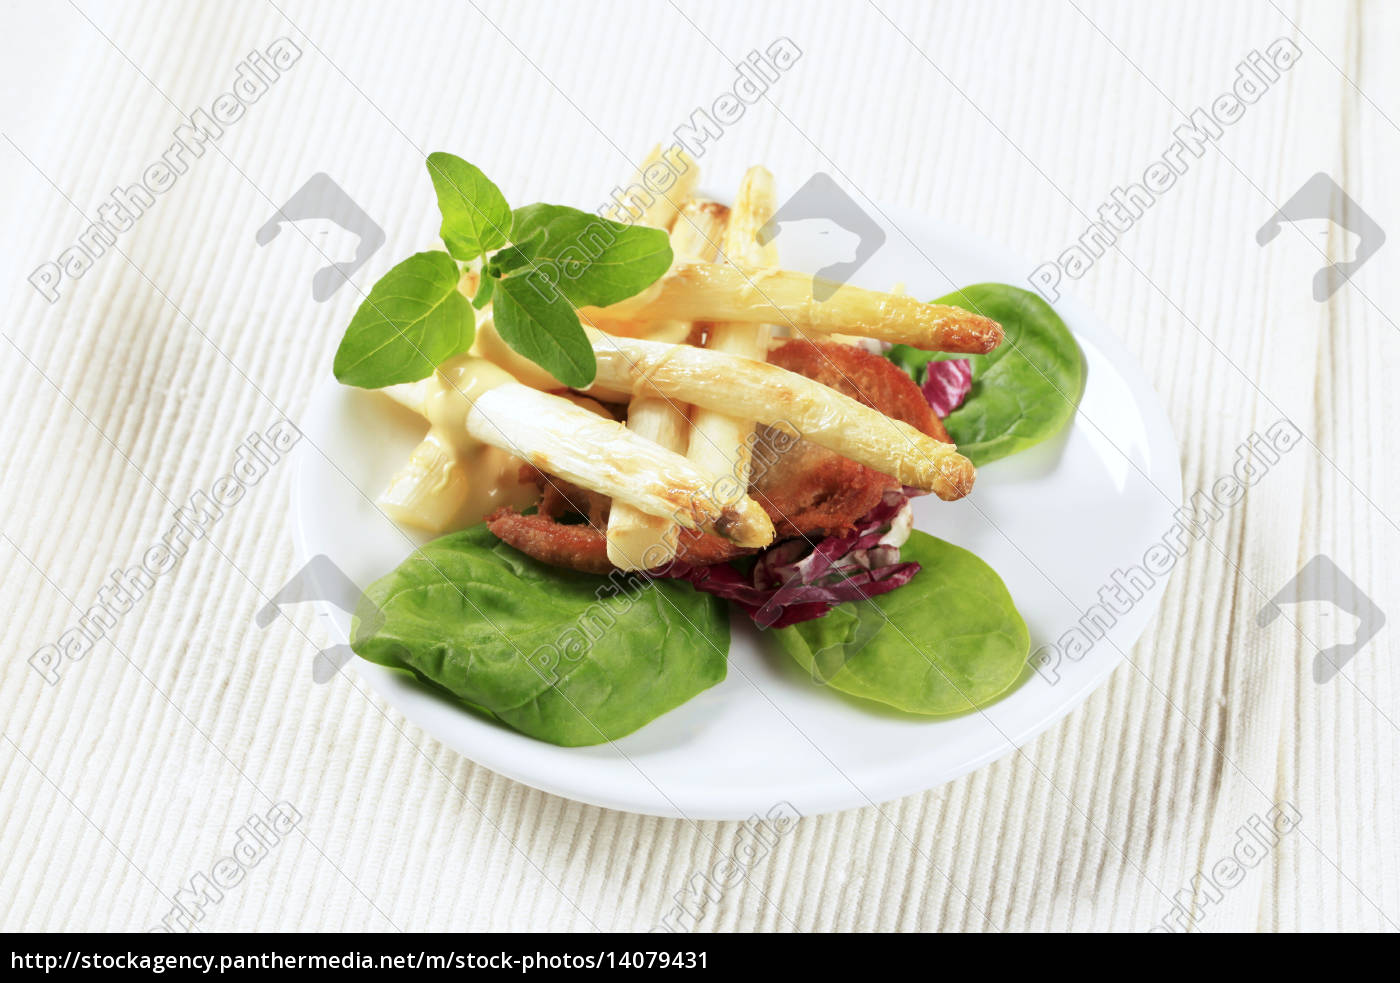 white, asparagus, with, crispy, bread - 14079431